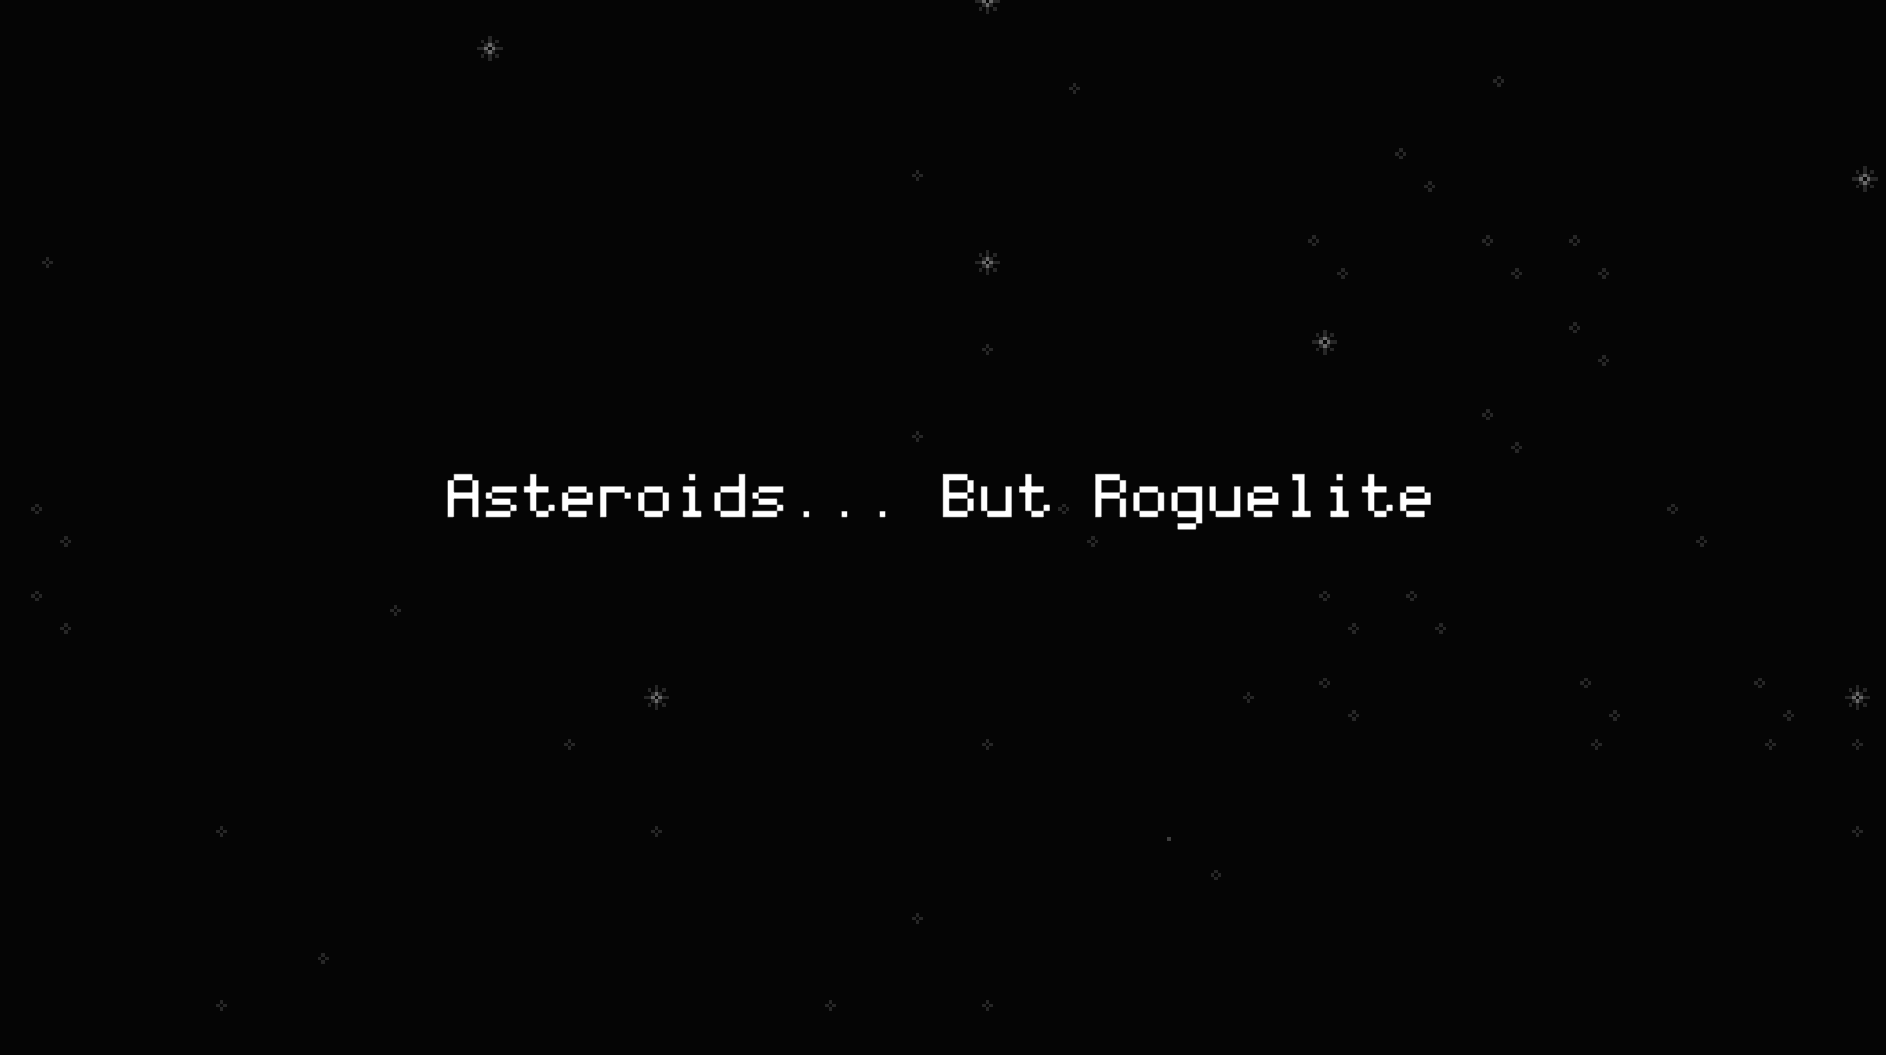 Asteroids... But Roguelite